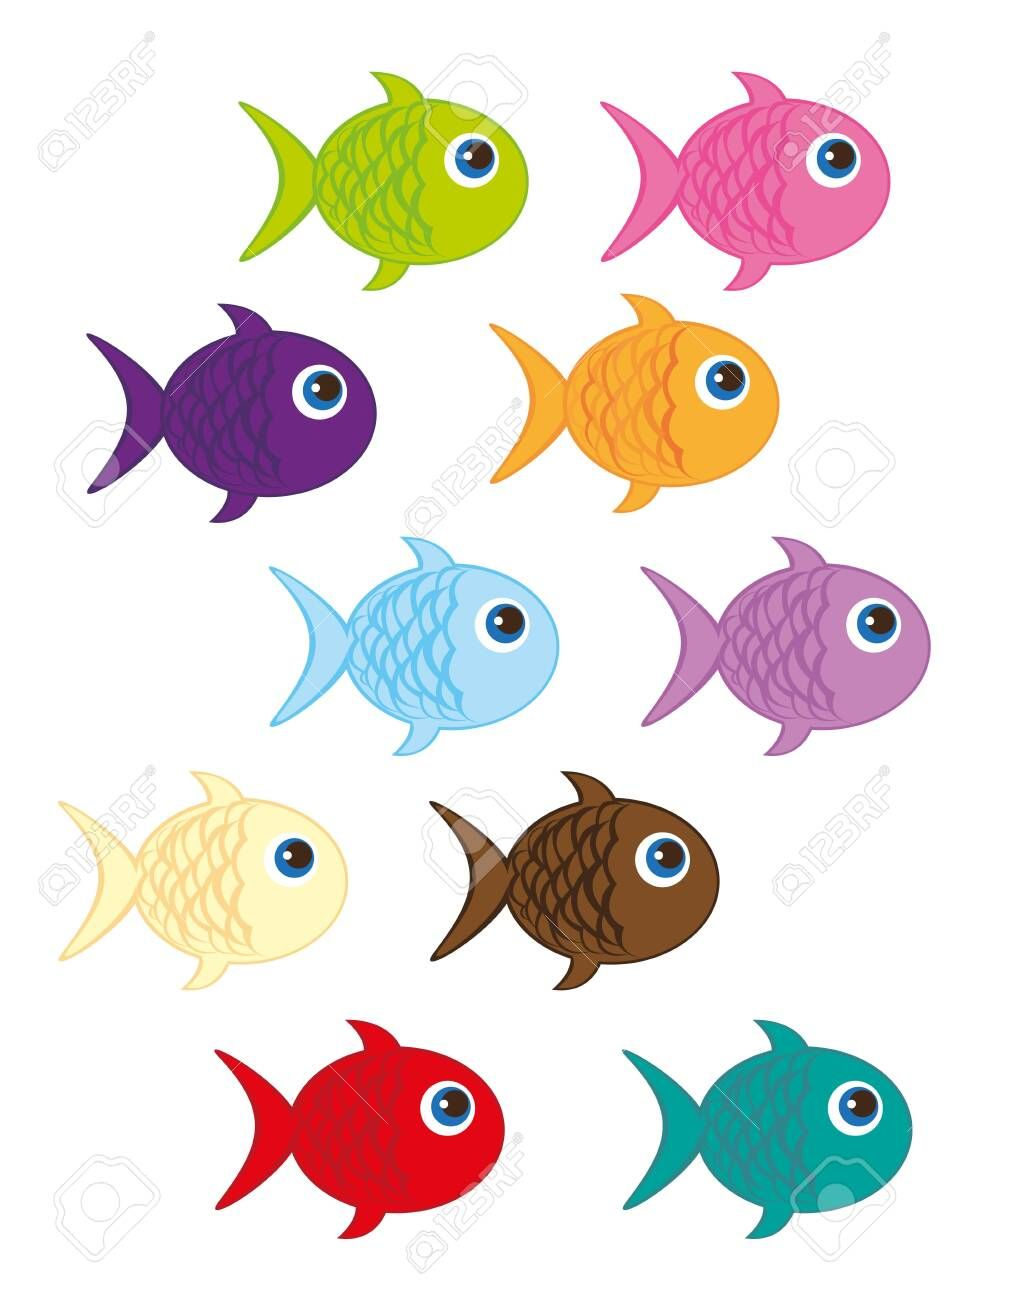 Cute Fish Cartoon Isolated Over White Background Vector Ad Cartoon Fish Cute Isolated Vector Cartoon Fish Cute Fish Fish Quilt